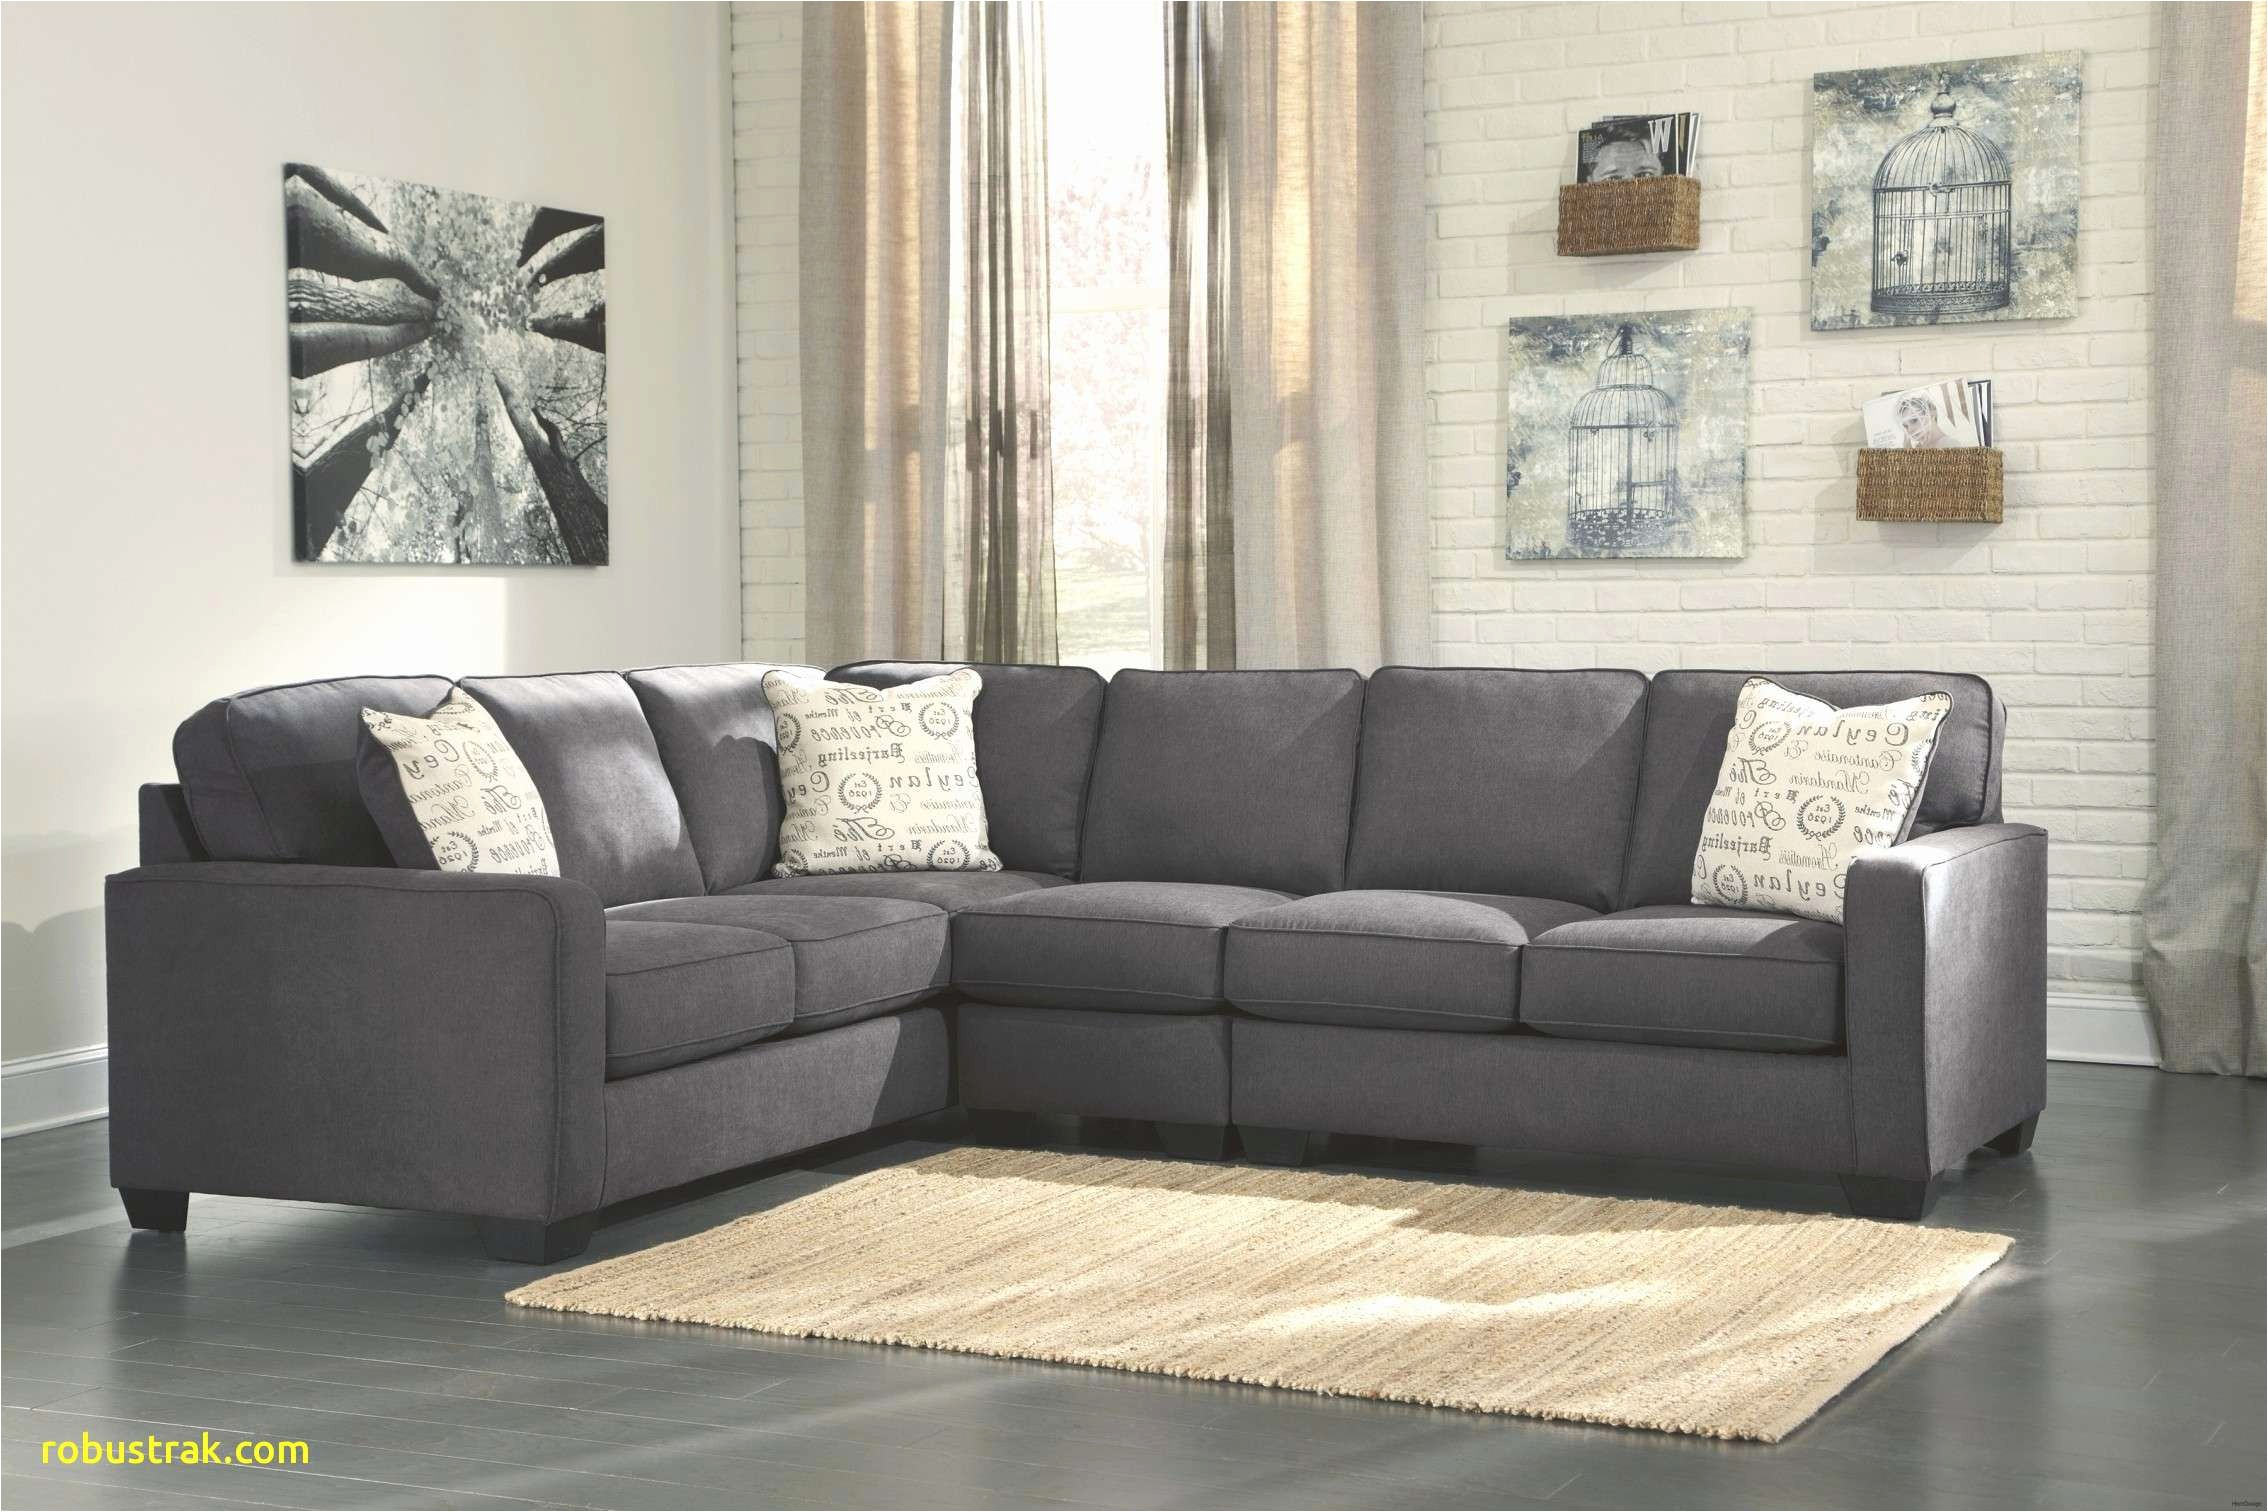 alenya flip charcoal sectional home design 3 piece sofa 0d contemporary leather